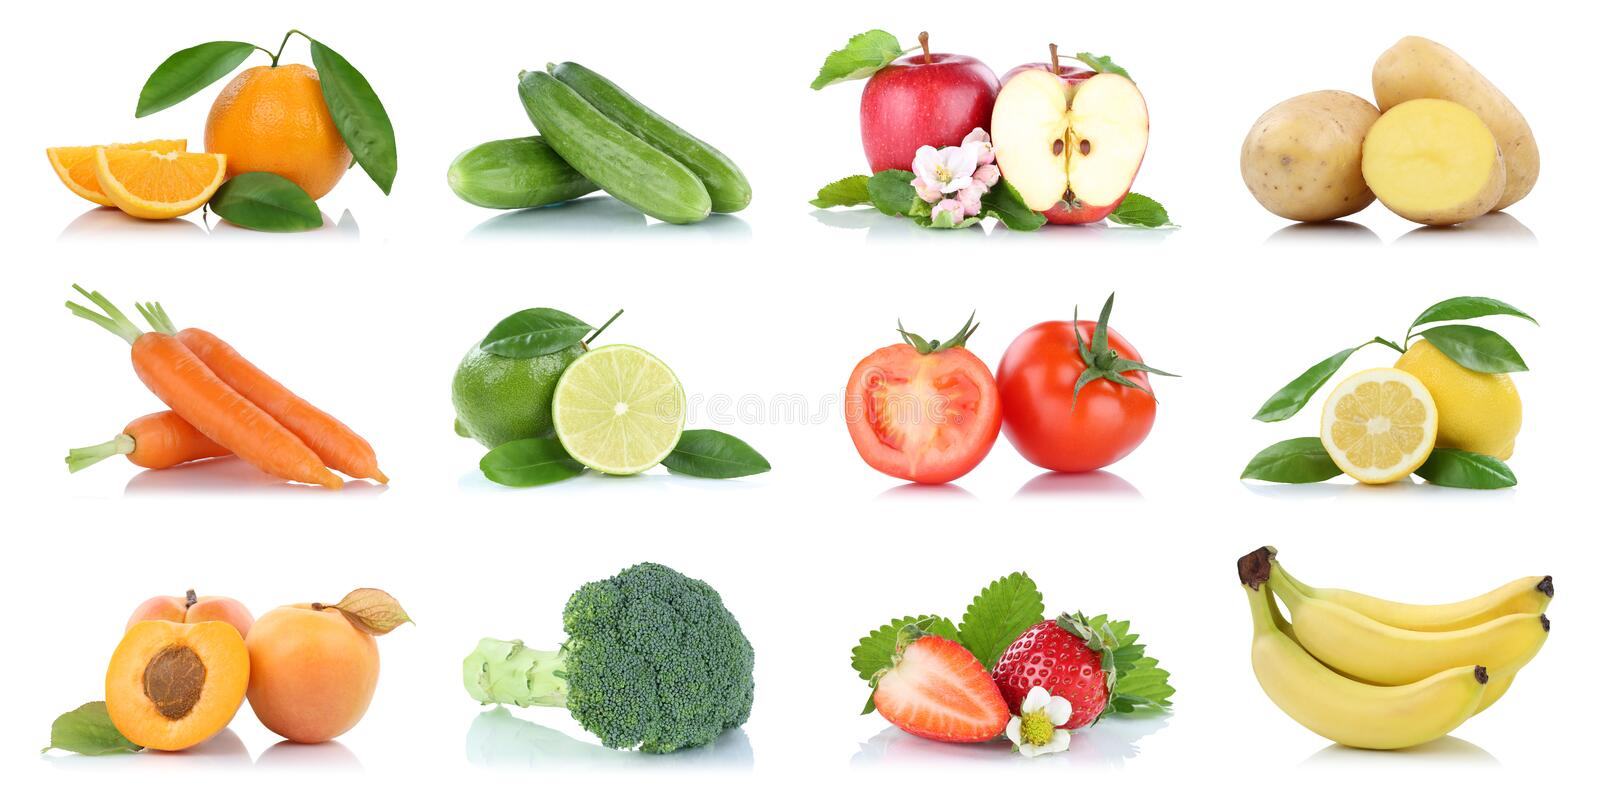 Fruit many fruits and vegetables collection isolated apple oranges banana tomatoes colors. On a white background stock photos